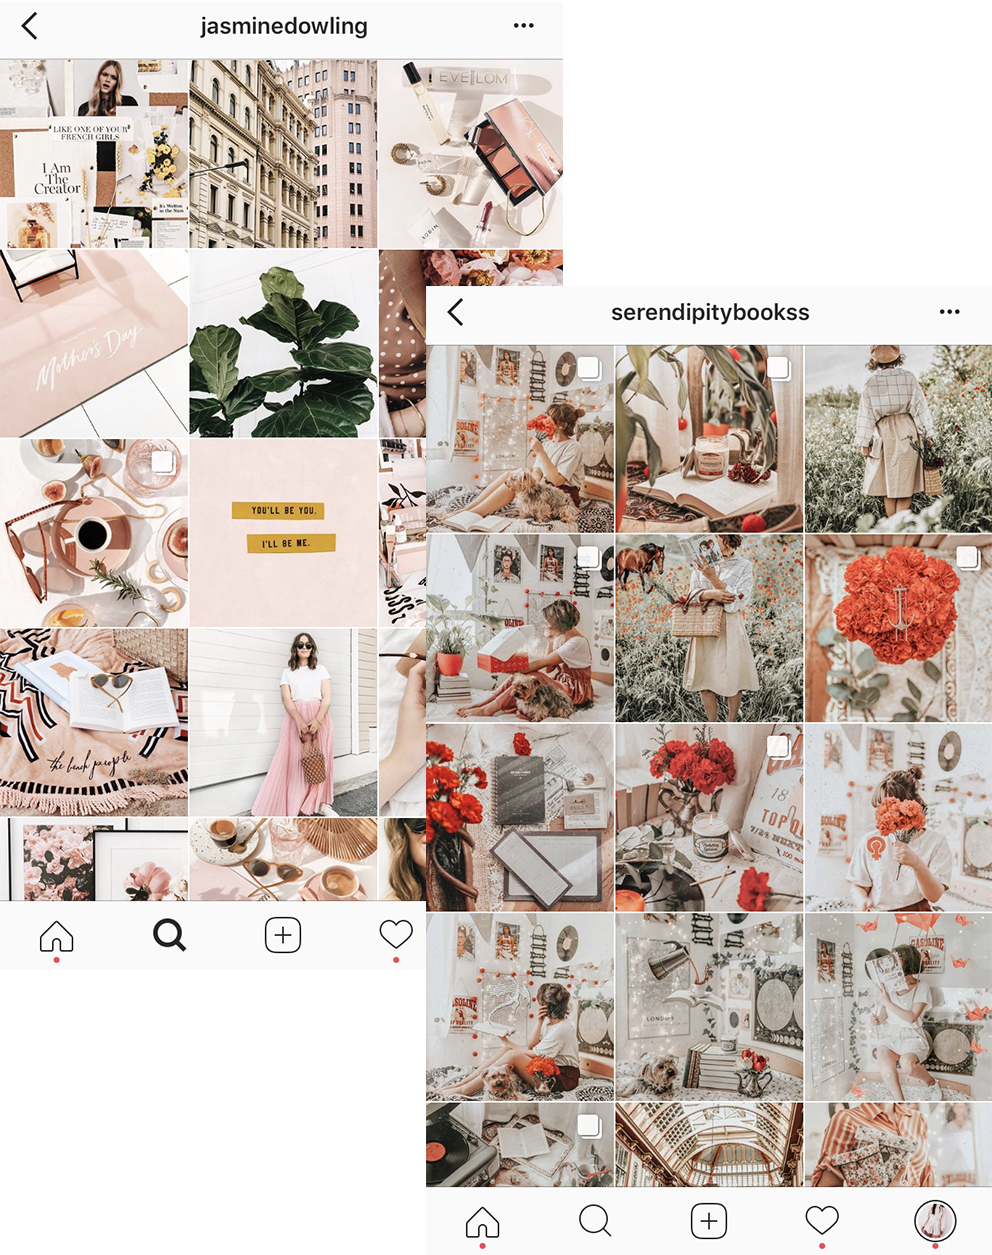 3/ use colour as a motif - Featuring the same colour throughout the majority of your photos can also draw all your posts together. The stricter you are with this, the more cohesive your feed will look. Spread out photos that don't fit this colour scheme.